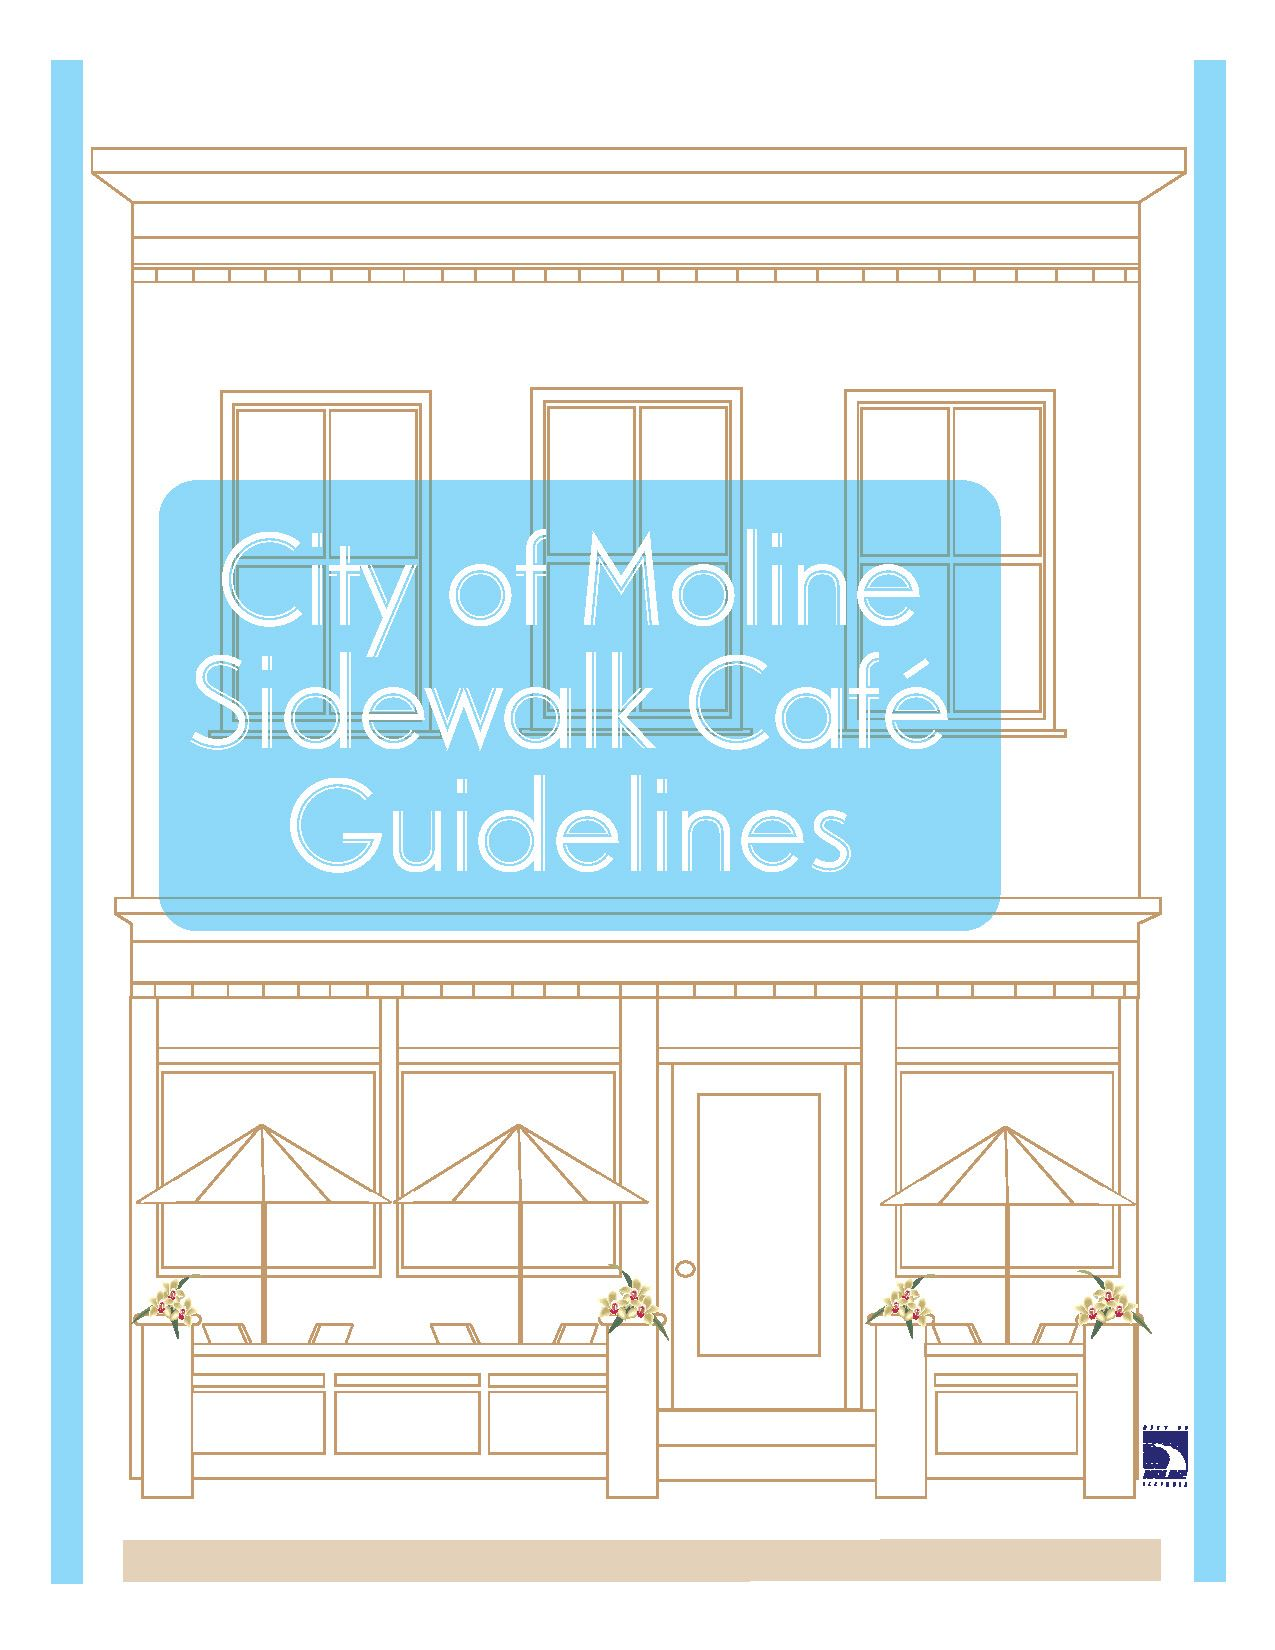 City of Moline Sidewalk Cafe Guidelines